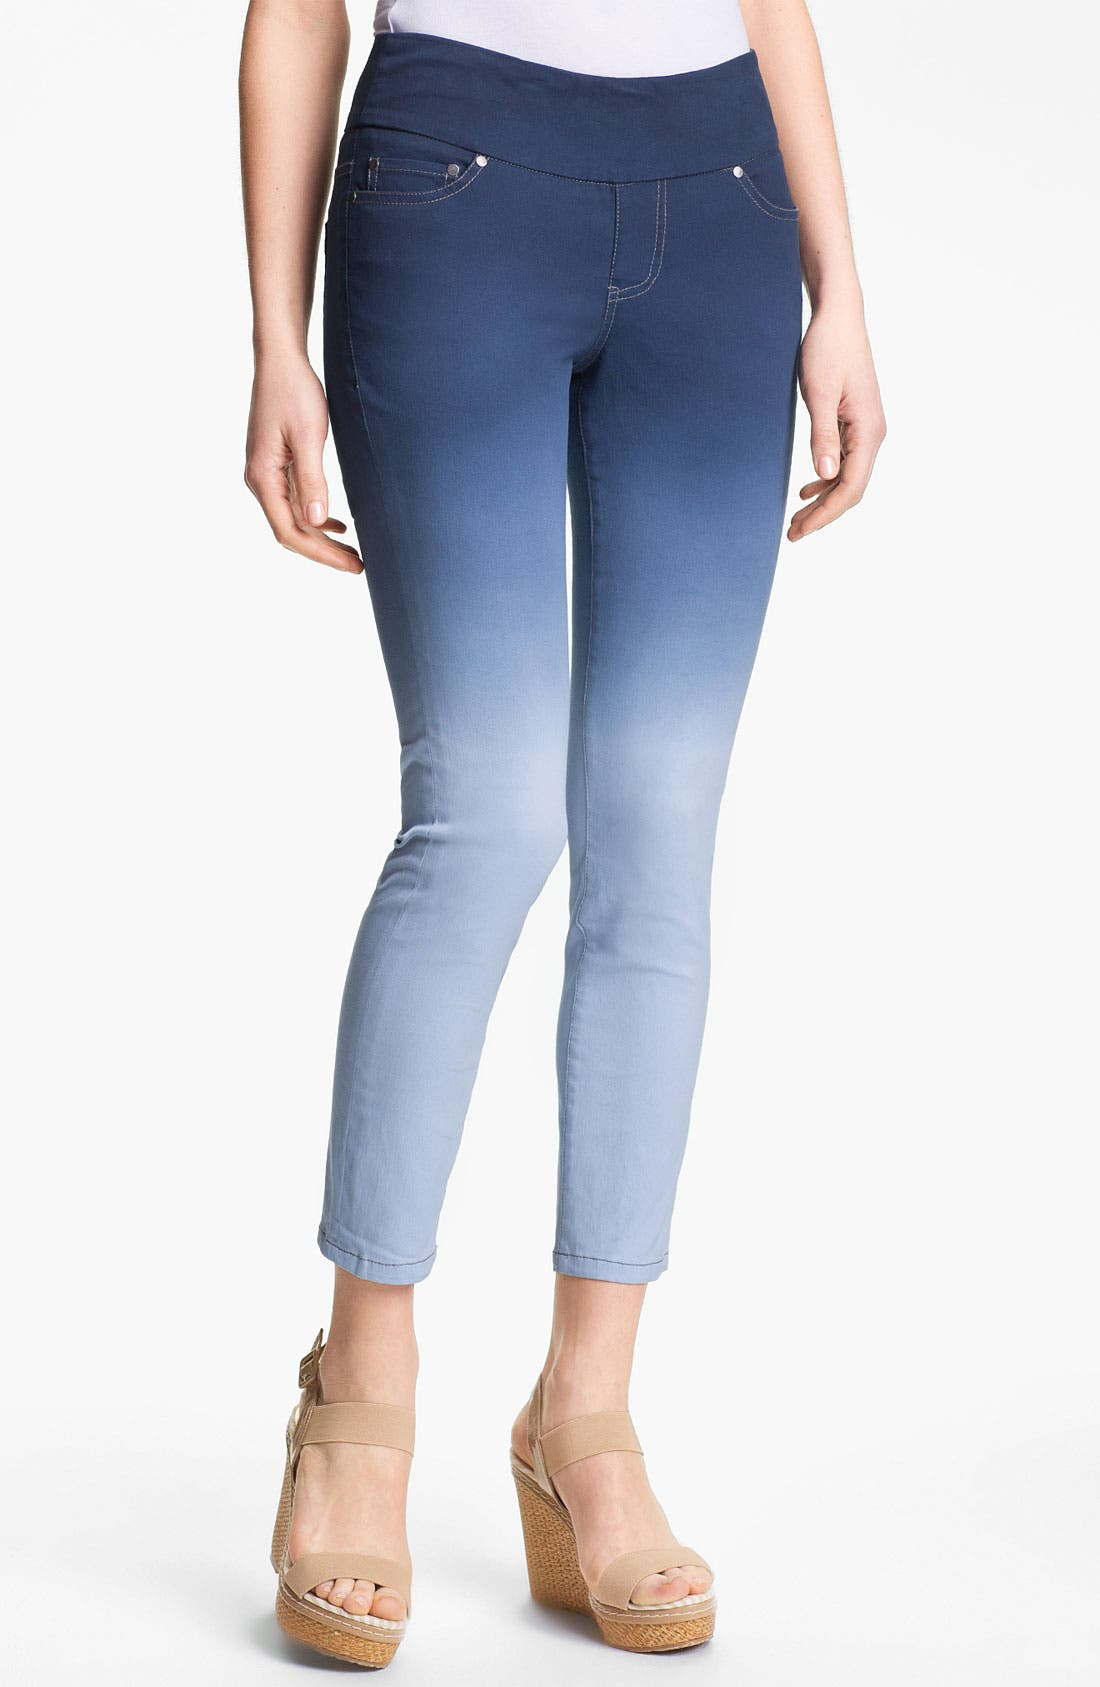 Alternate Image 1 Selected - Jag Jeans 'Amelia' Pull-On Slim Ankle Jeans